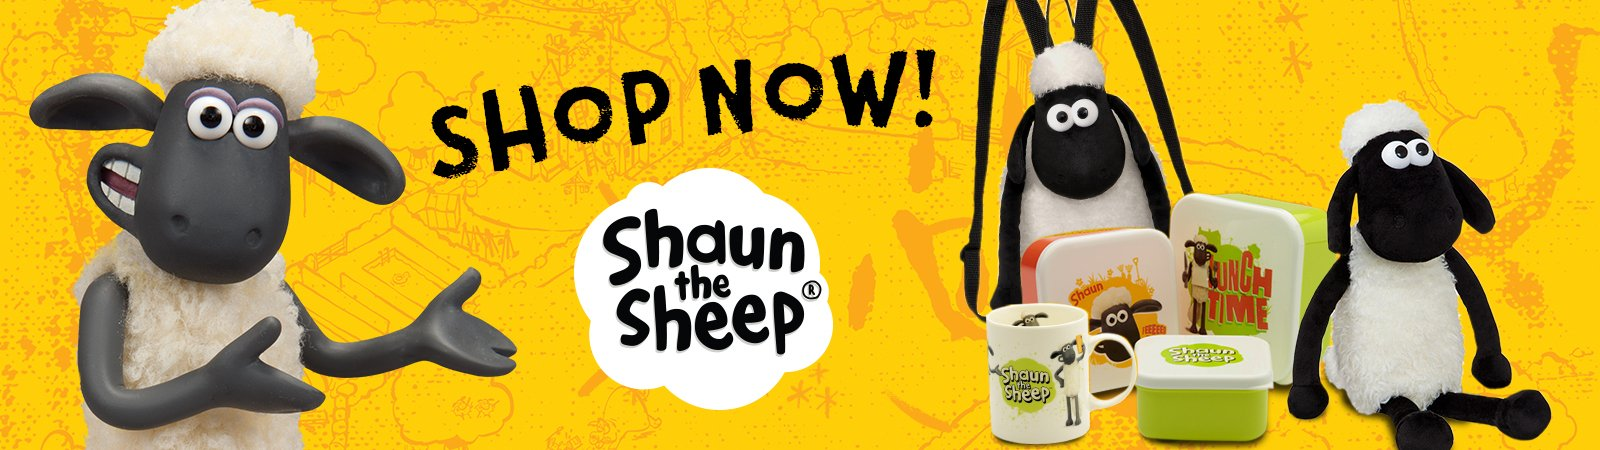 Shaun the Sheep - Toys & Games